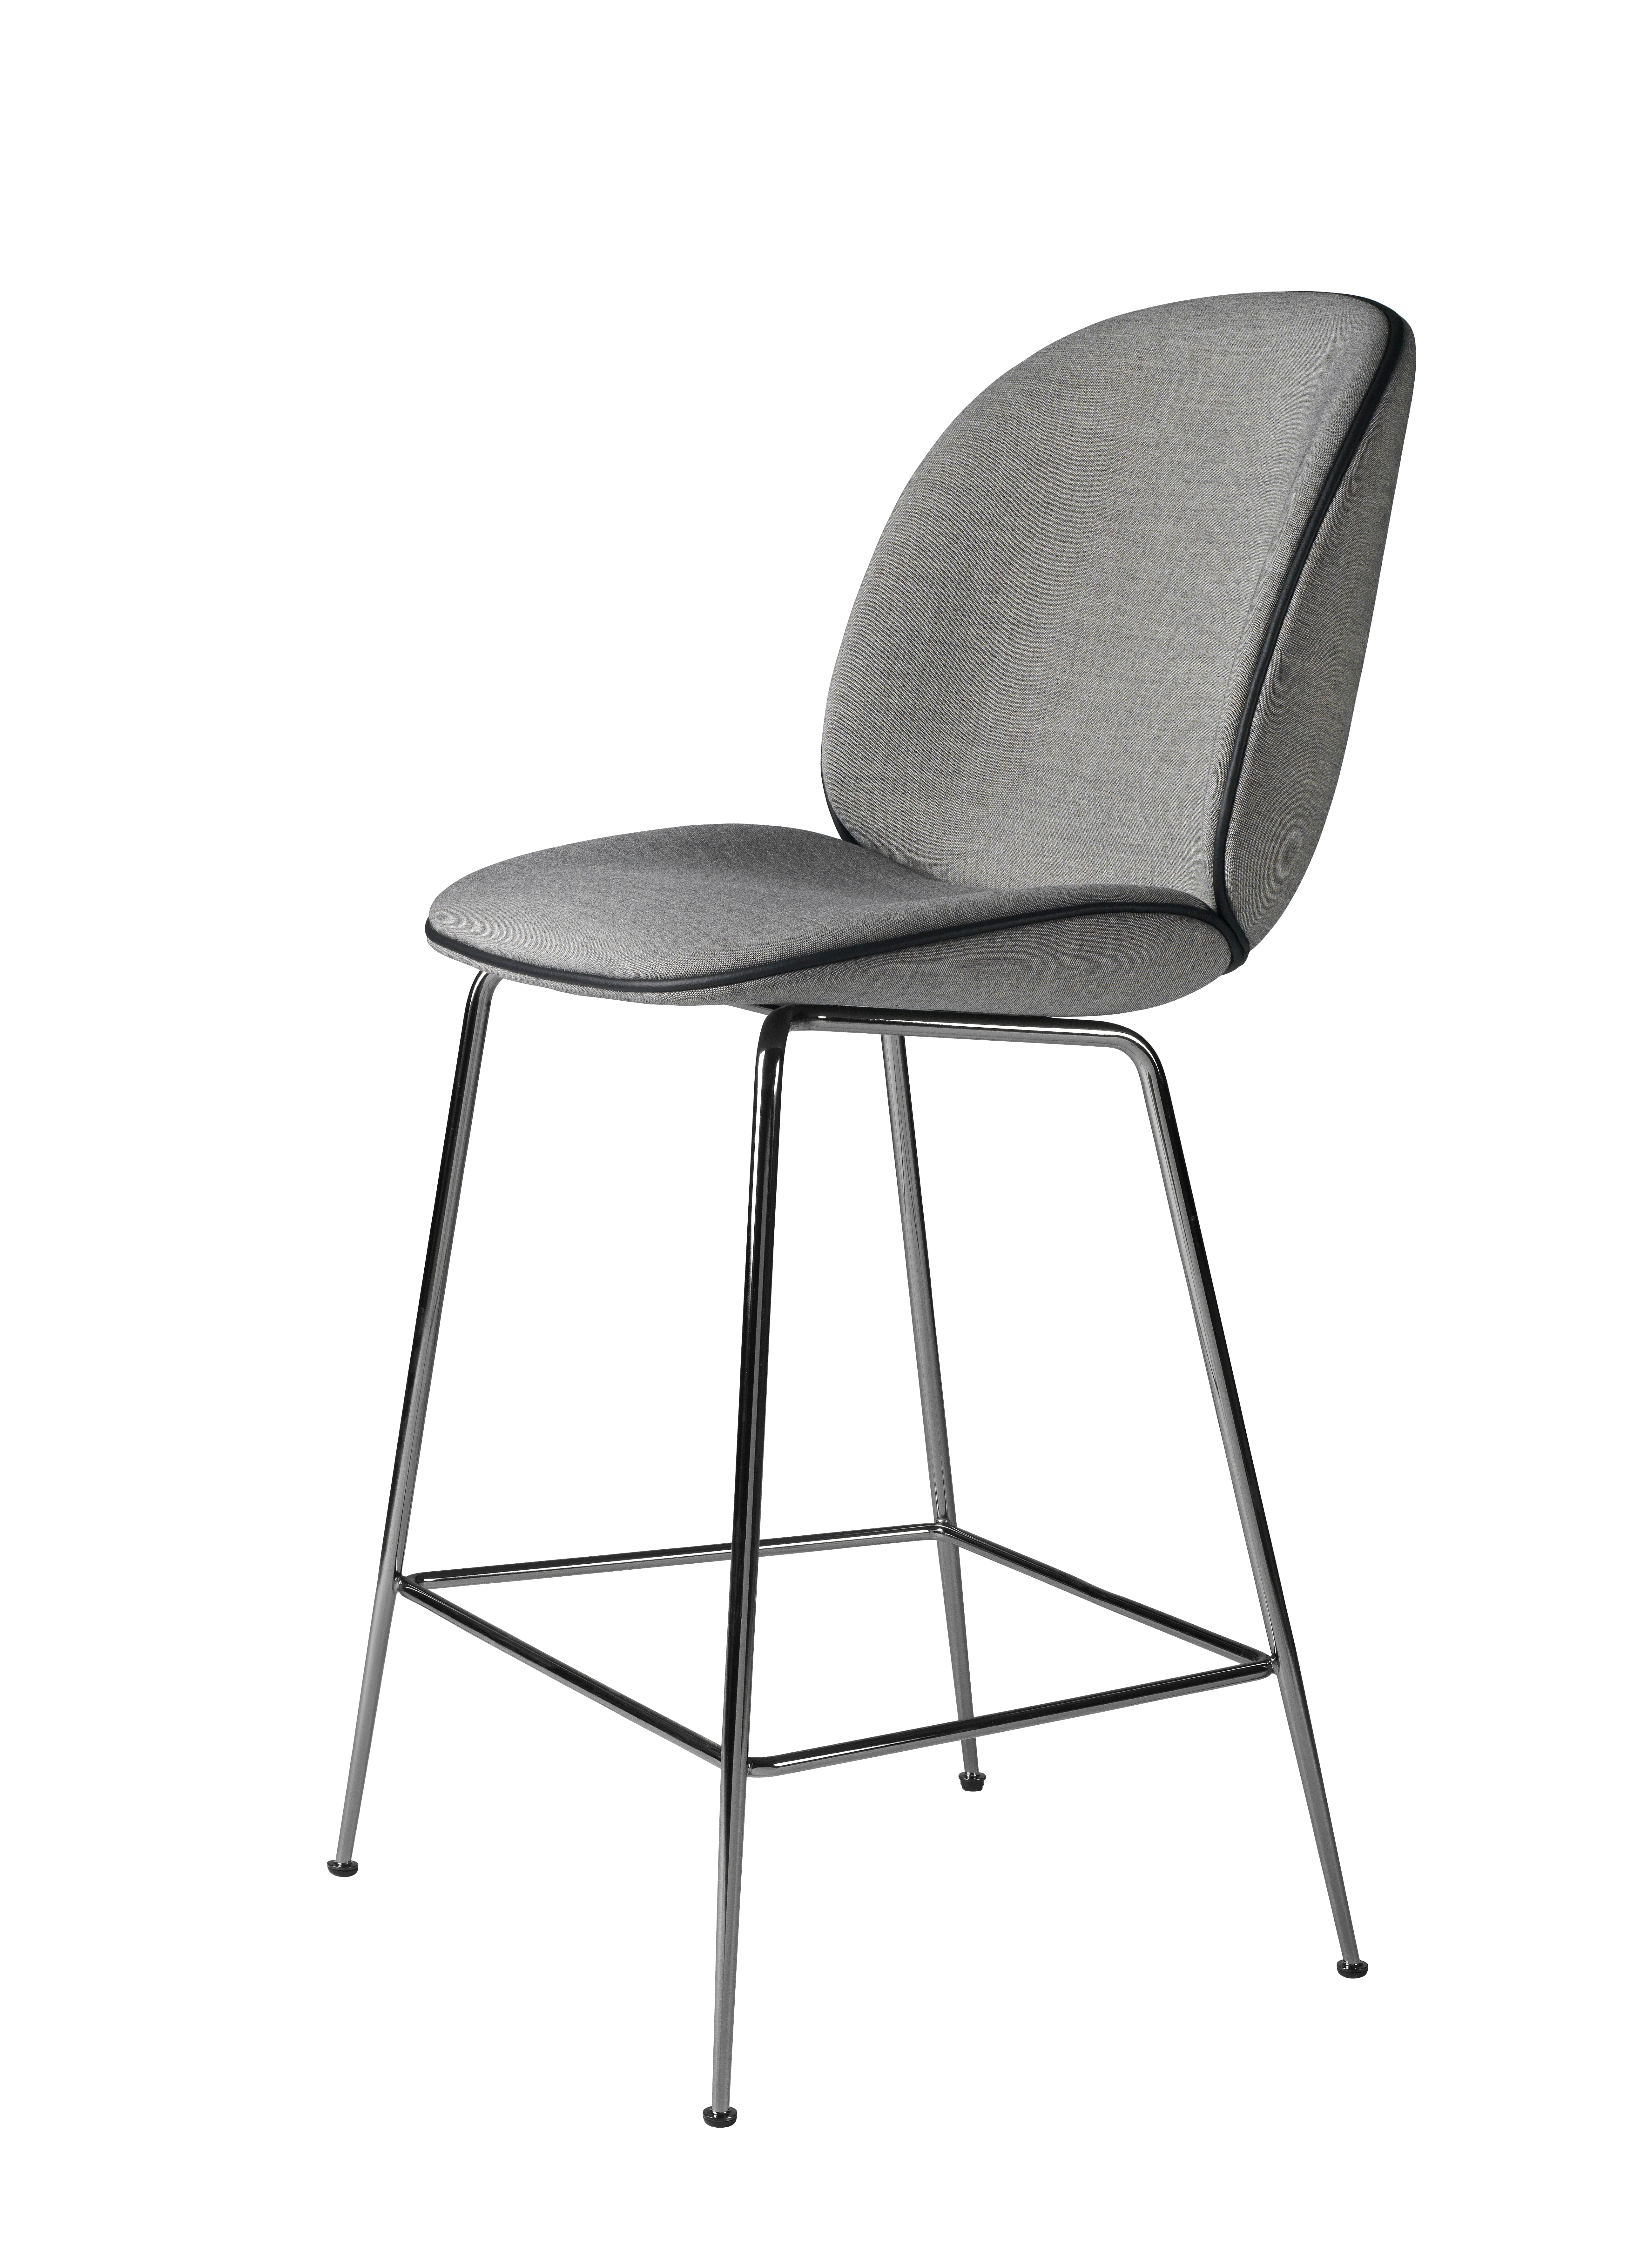 Suite NY Beetle stool